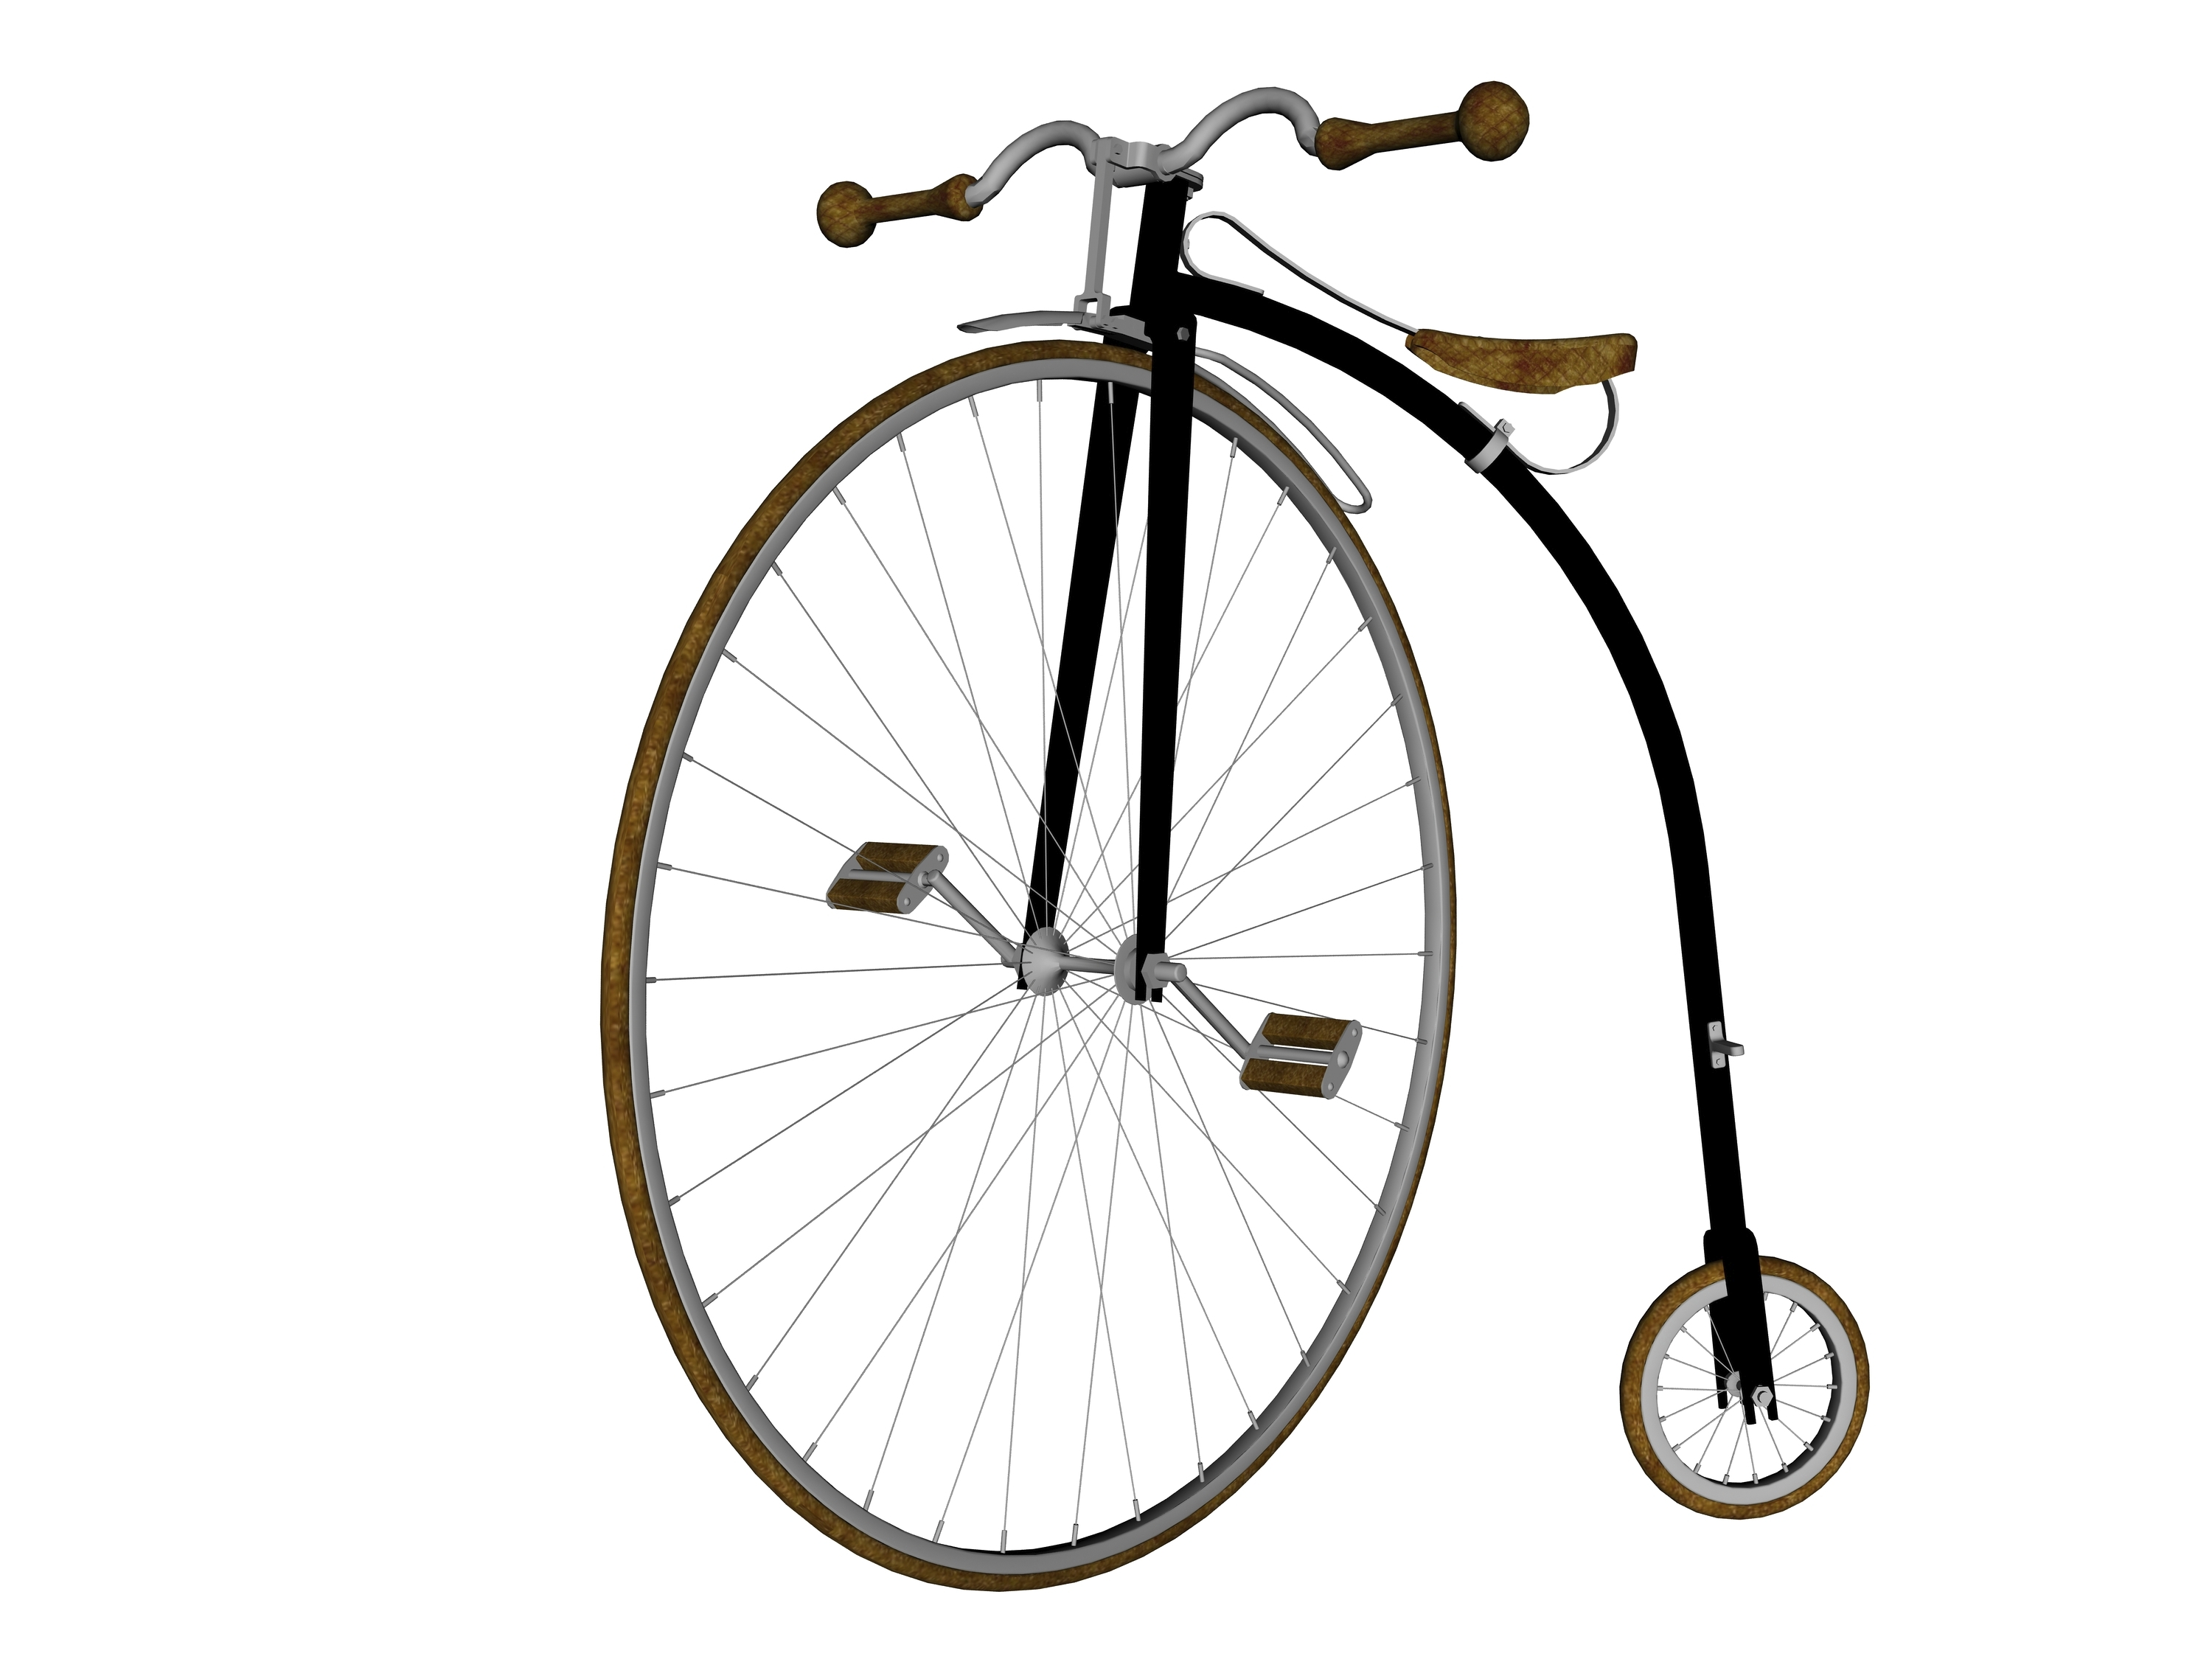 Why did the penny-farthing have a large front wheel